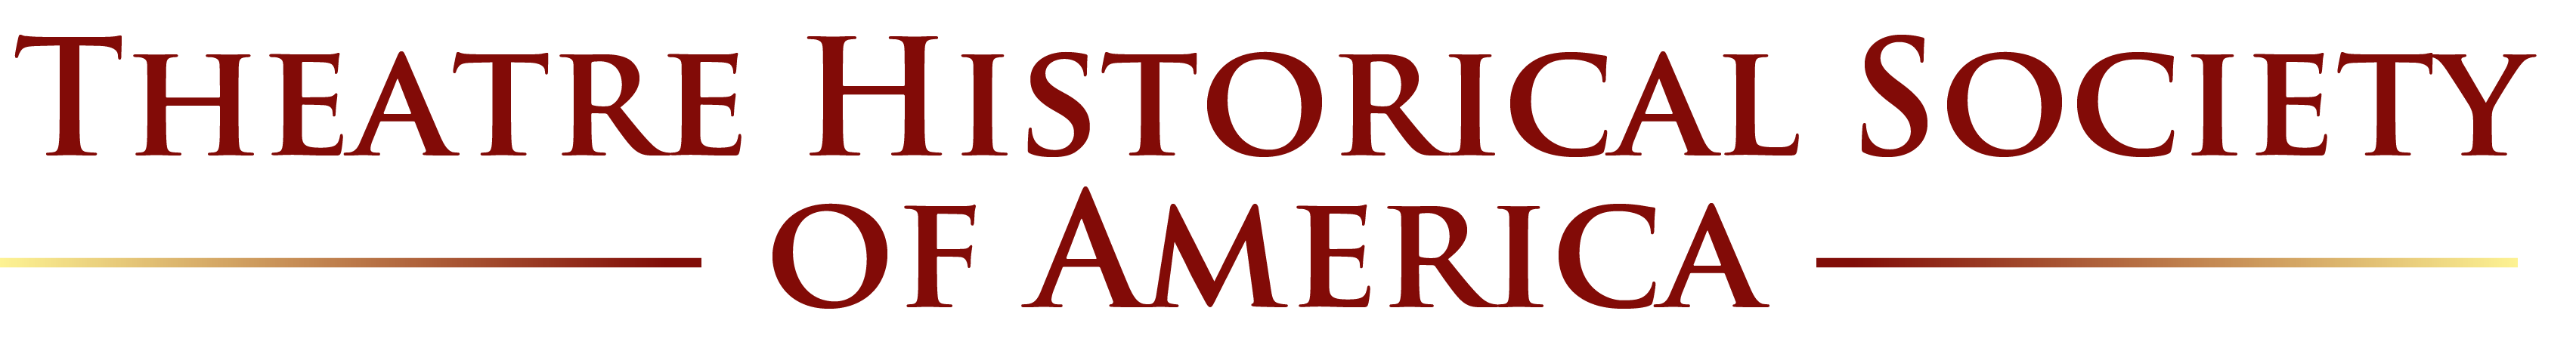 Theatre Historical Society of America logo